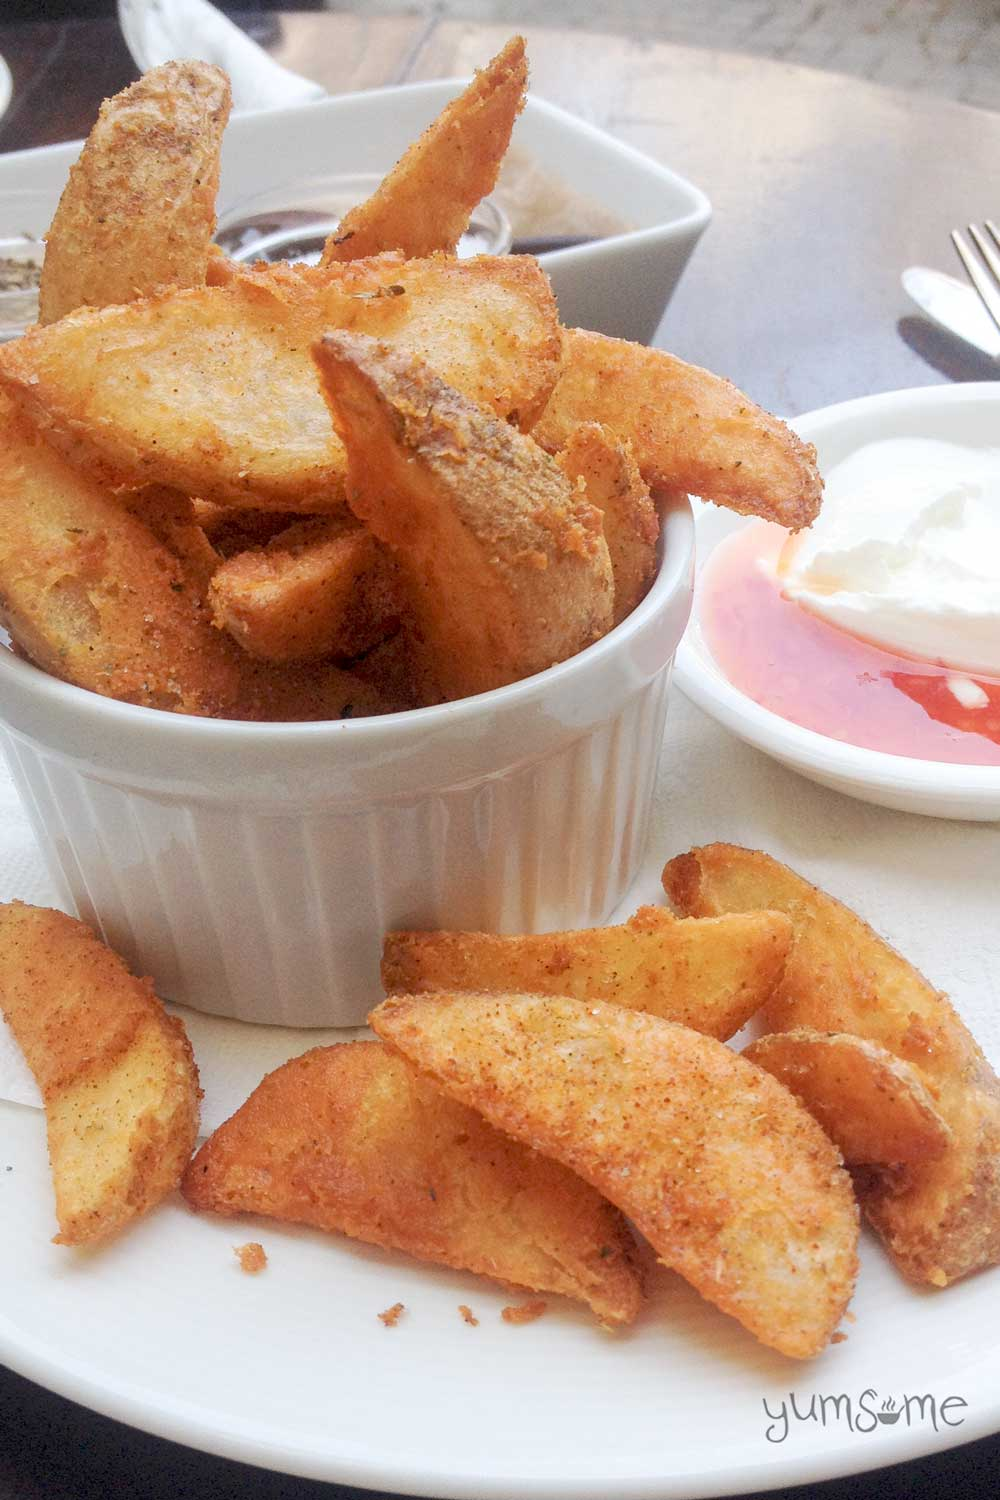 Delicious potato wedges with a dish of veganaise and nam prik pao.